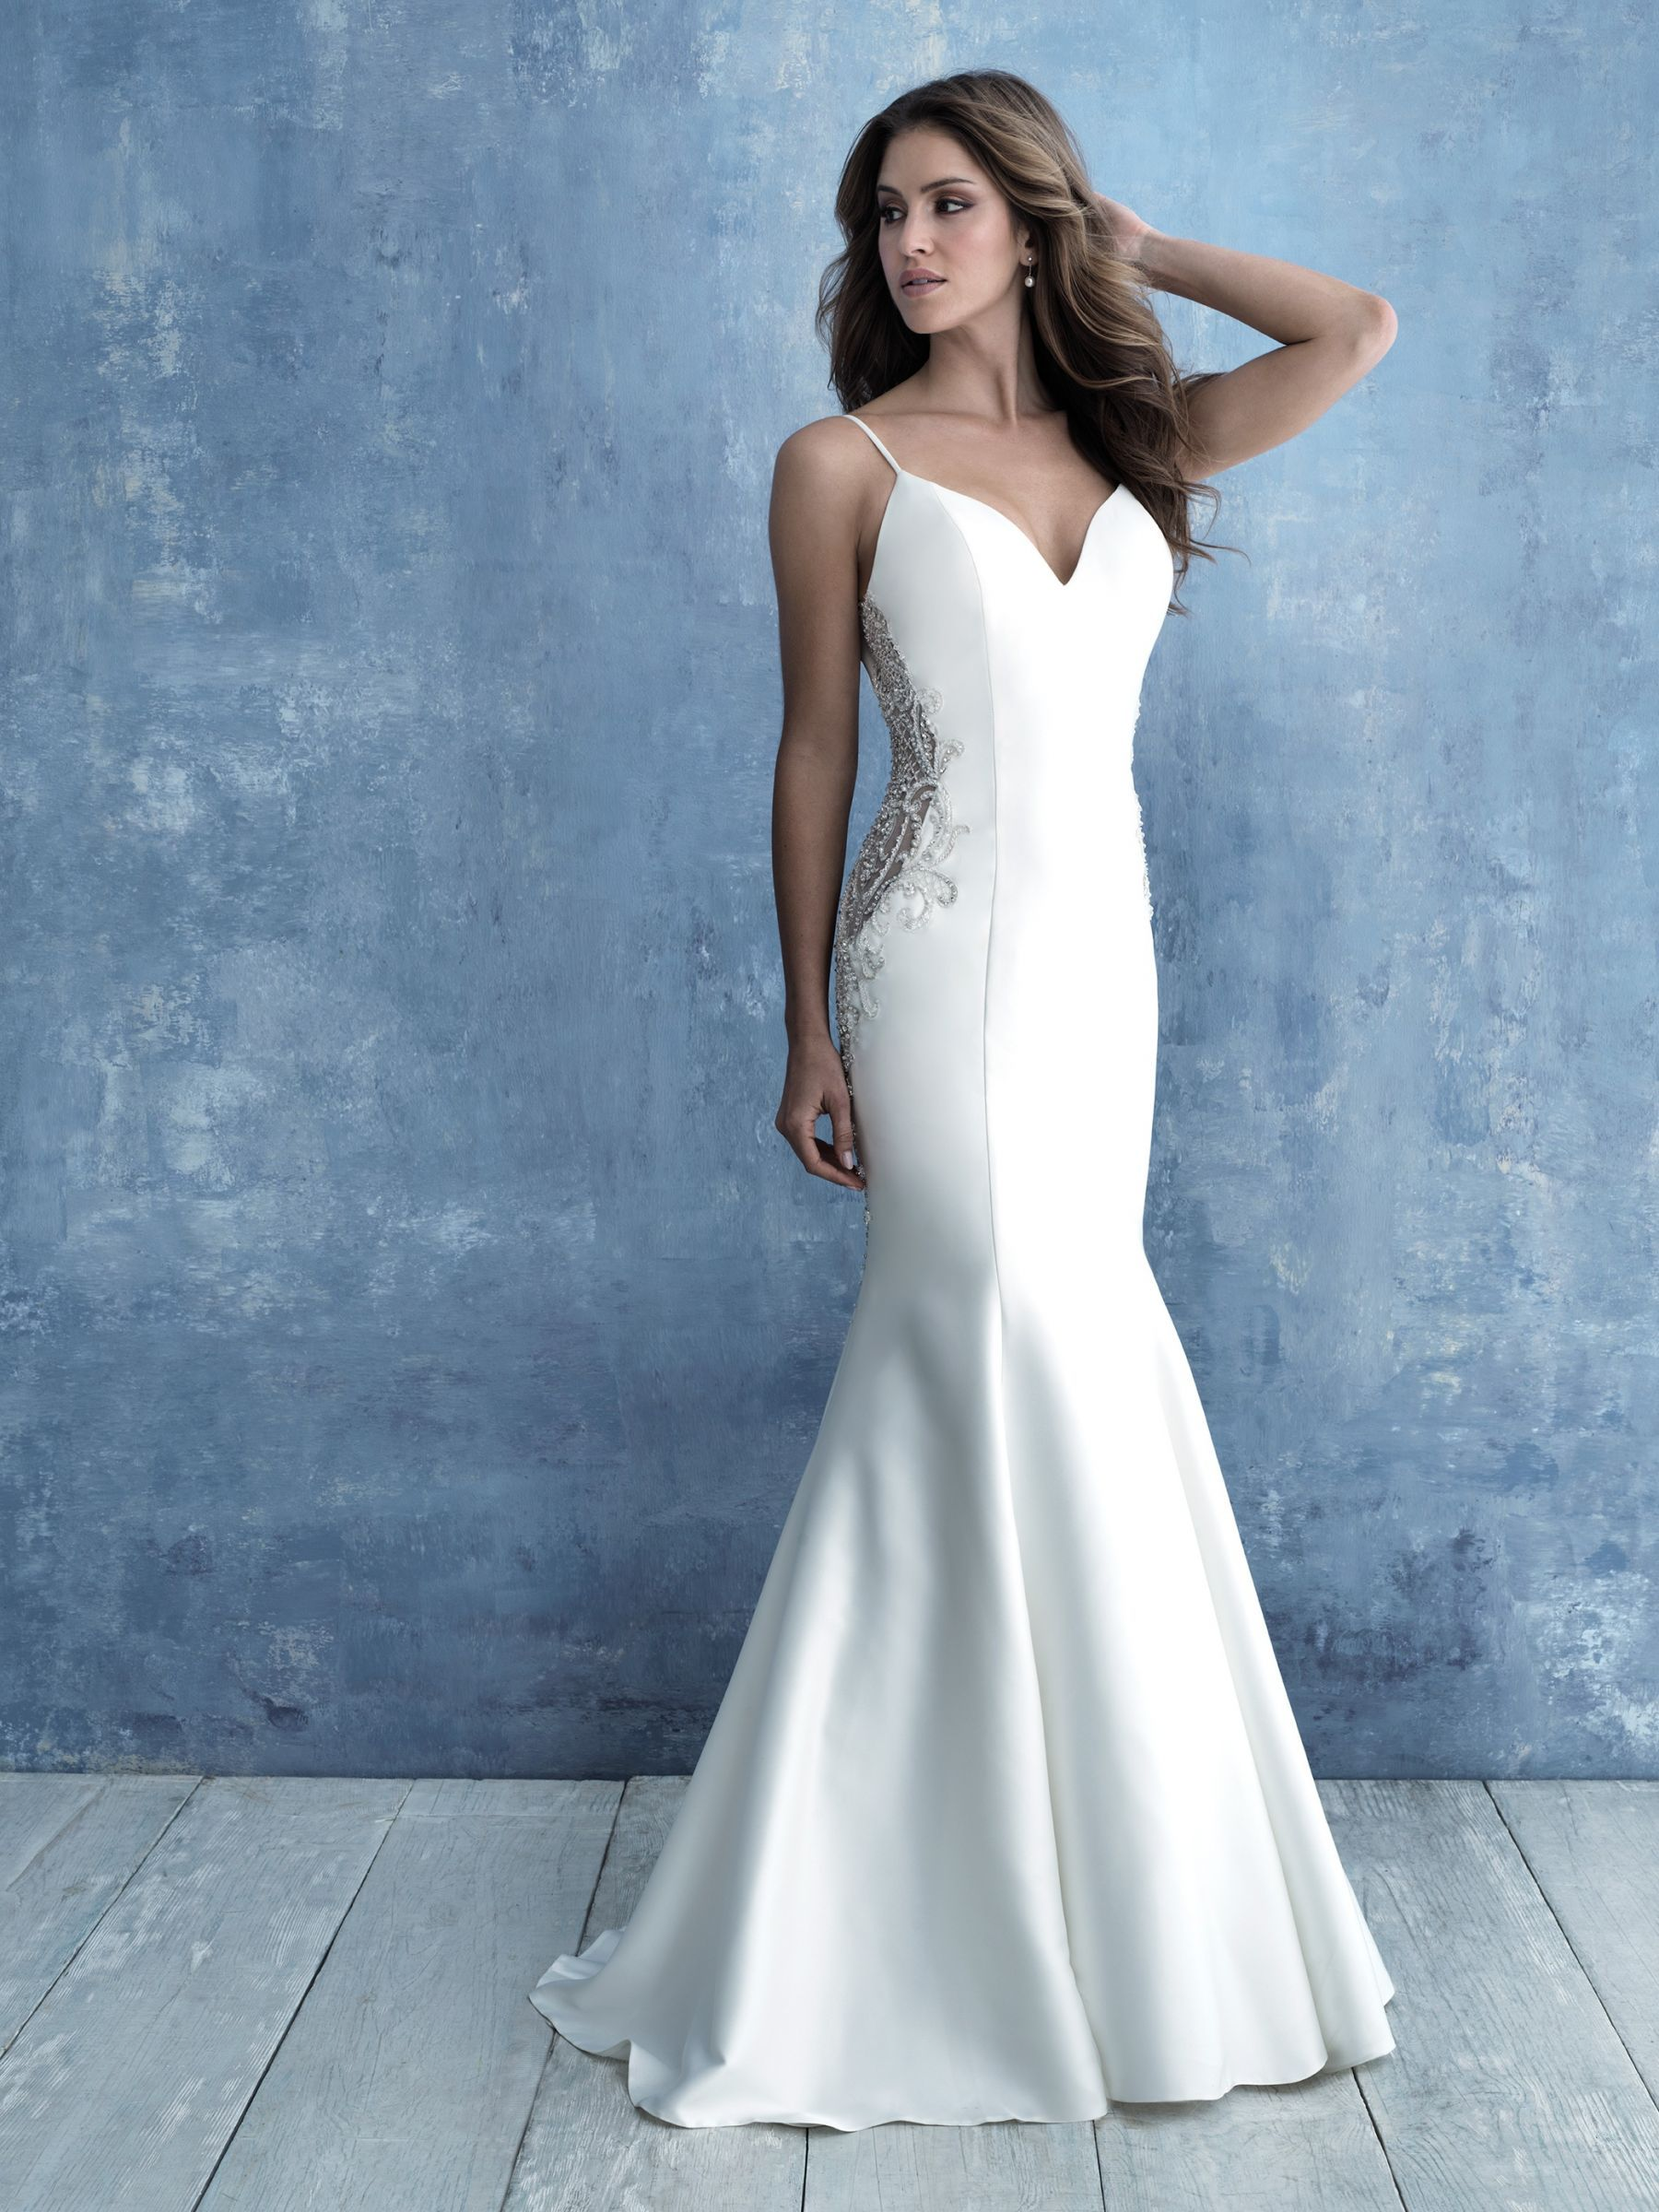 Allure Bridal Allure Wedding Dresses Allure Bridal Designer Wedding Dresses